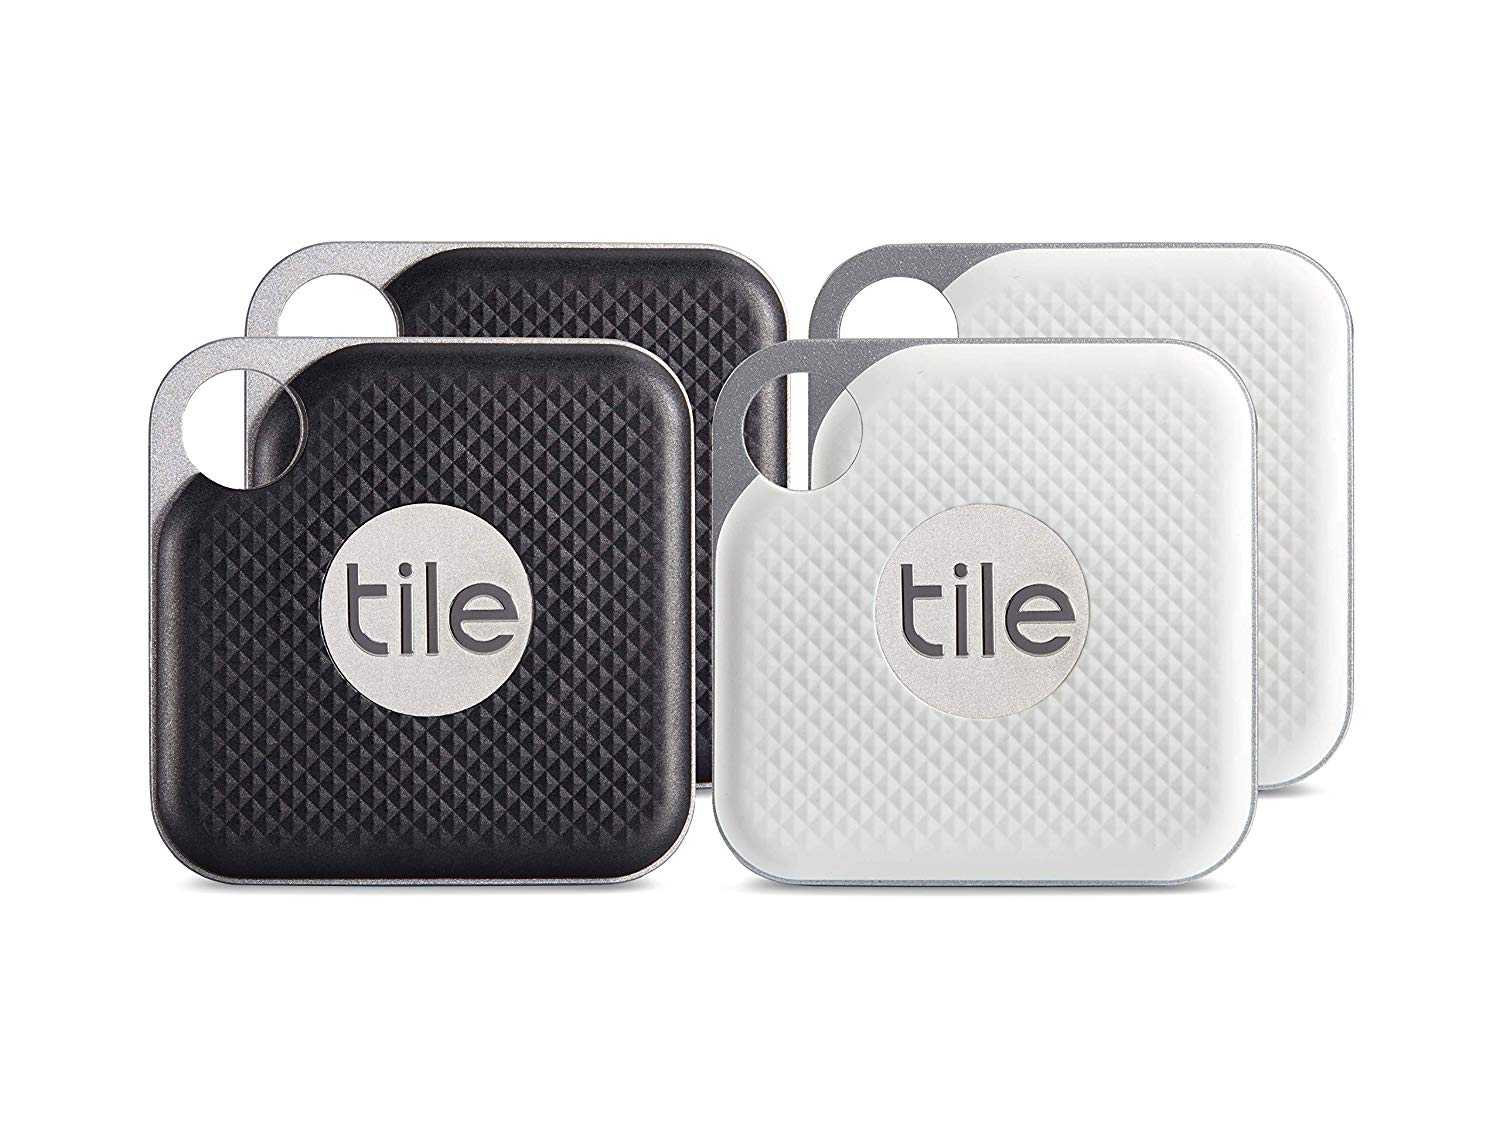 4-Pack Tile Pro Tracker Black and White Combo (2018)